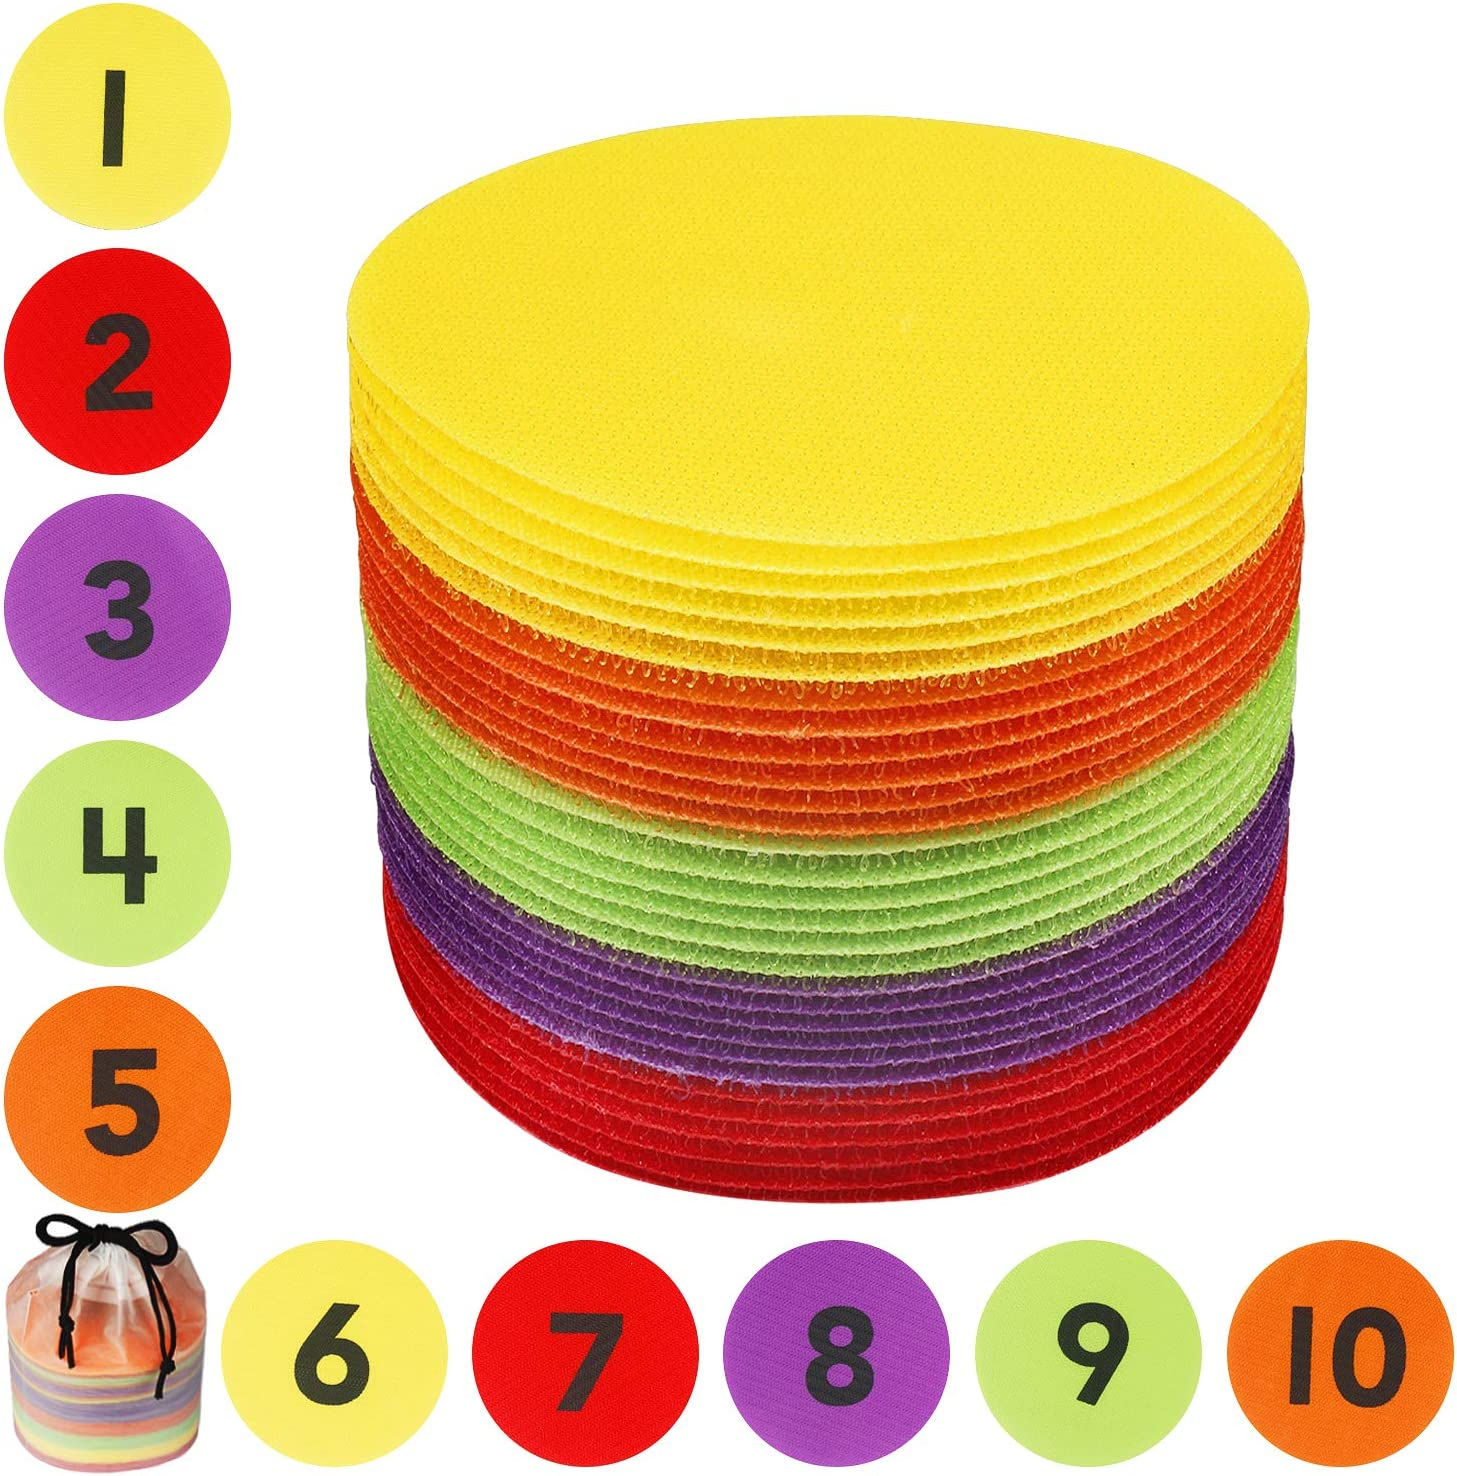 5 Colors Training and Drills LuBanSir Spot Markers 4 Inch Pack of 40 Colored Floor Circles Marker Dots with Partial Number Symbols for Kids Teacher Making up Games